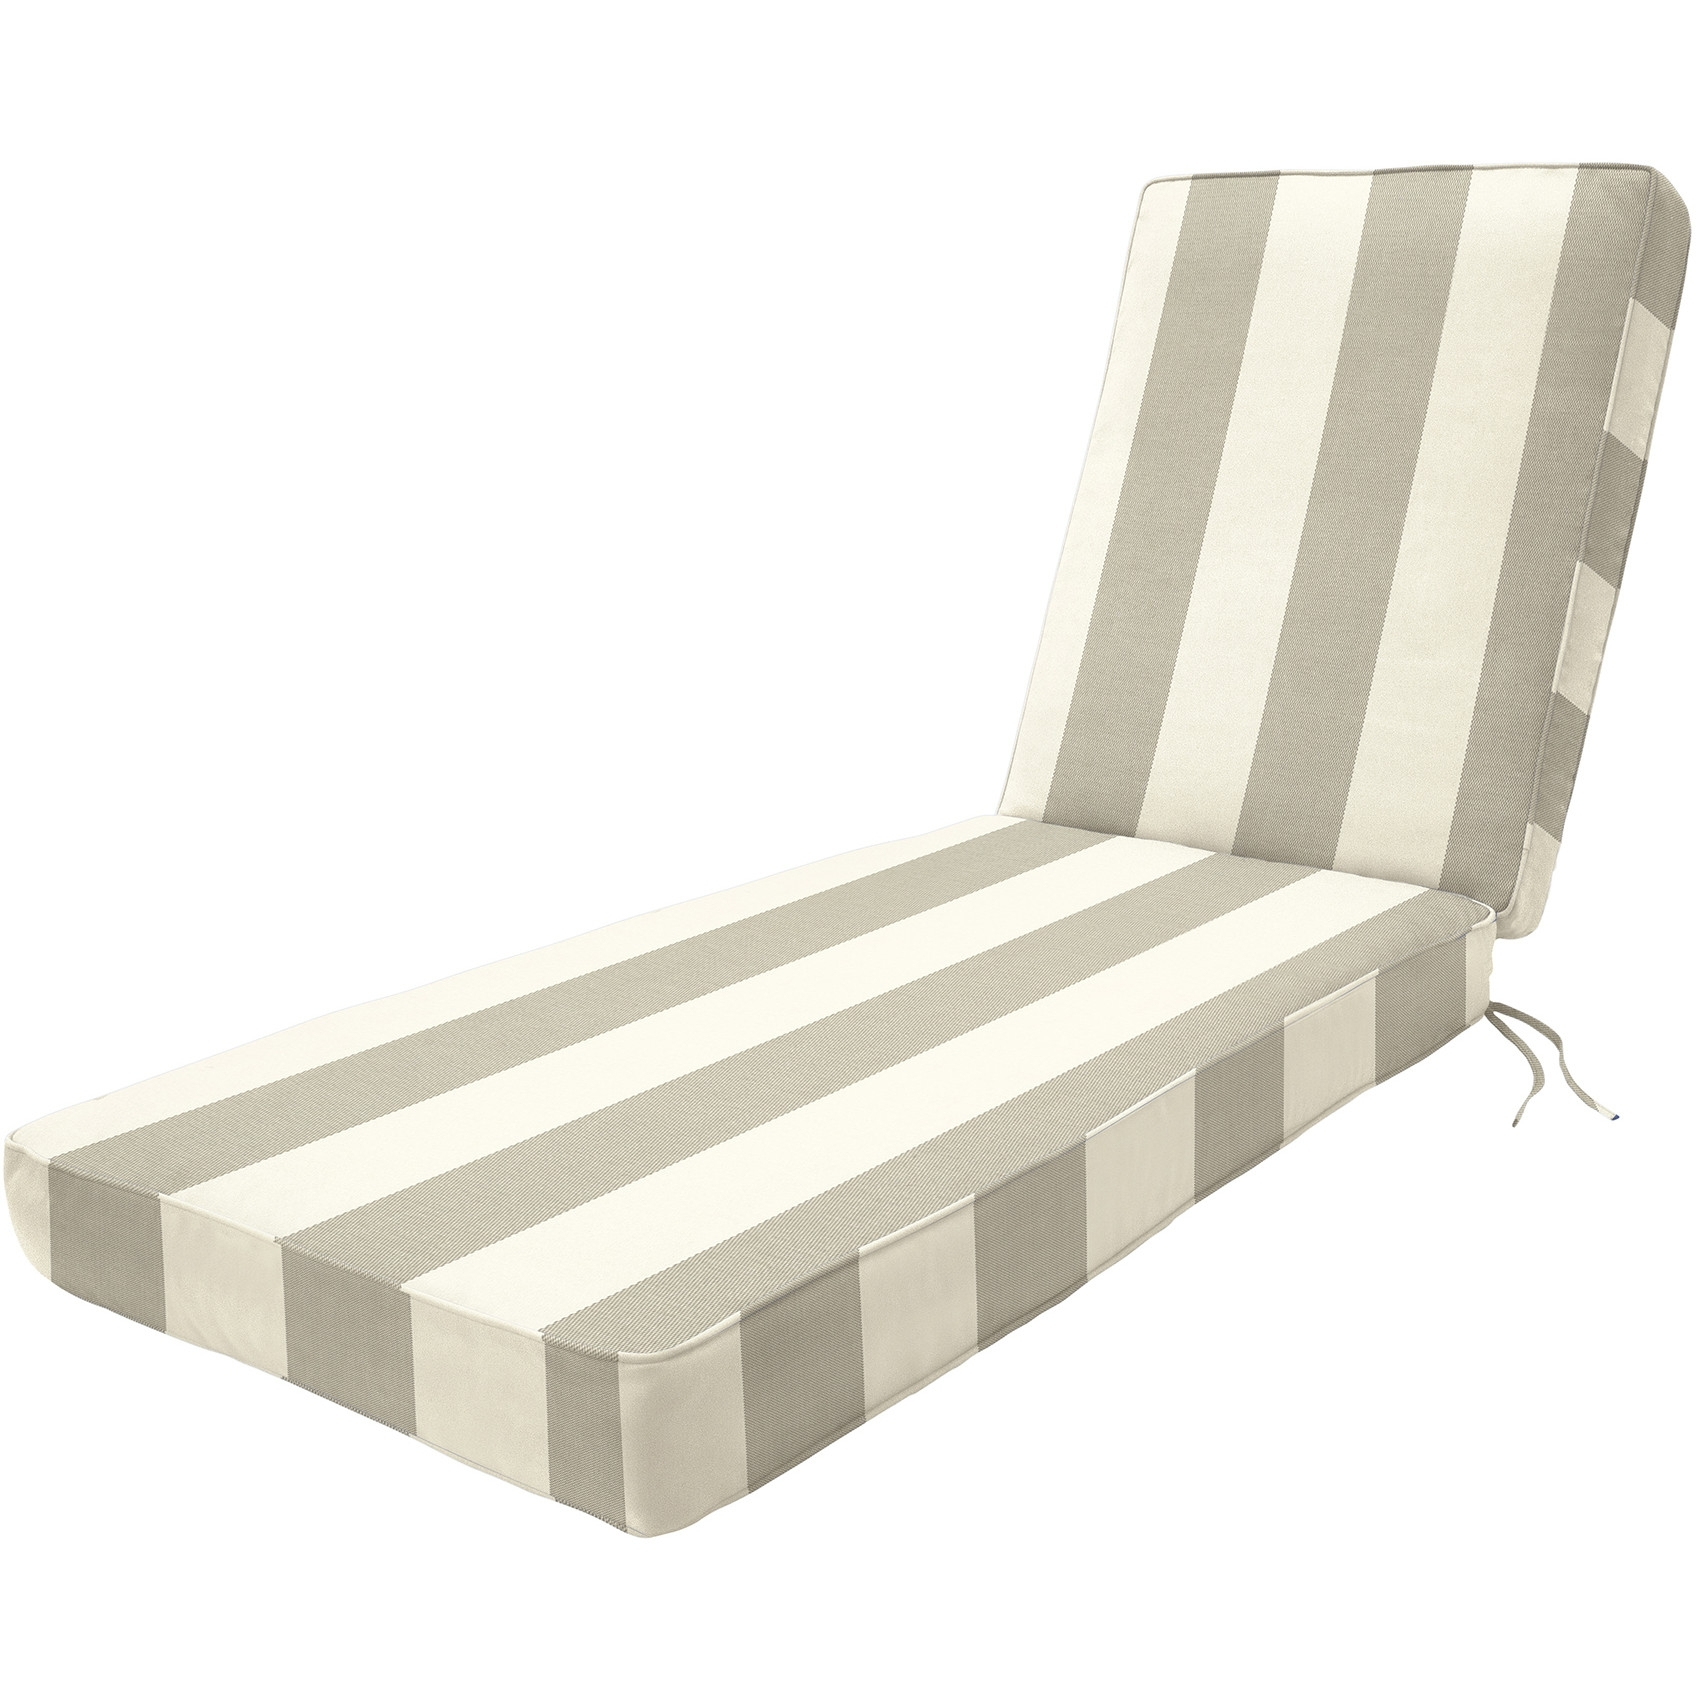 Chaise Lounge Chair Outdoor Cushions Within Widely Used Chaise Lounge Chair Outdoor Cushions • Lounge Chairs Ideas (View 5 of 15)